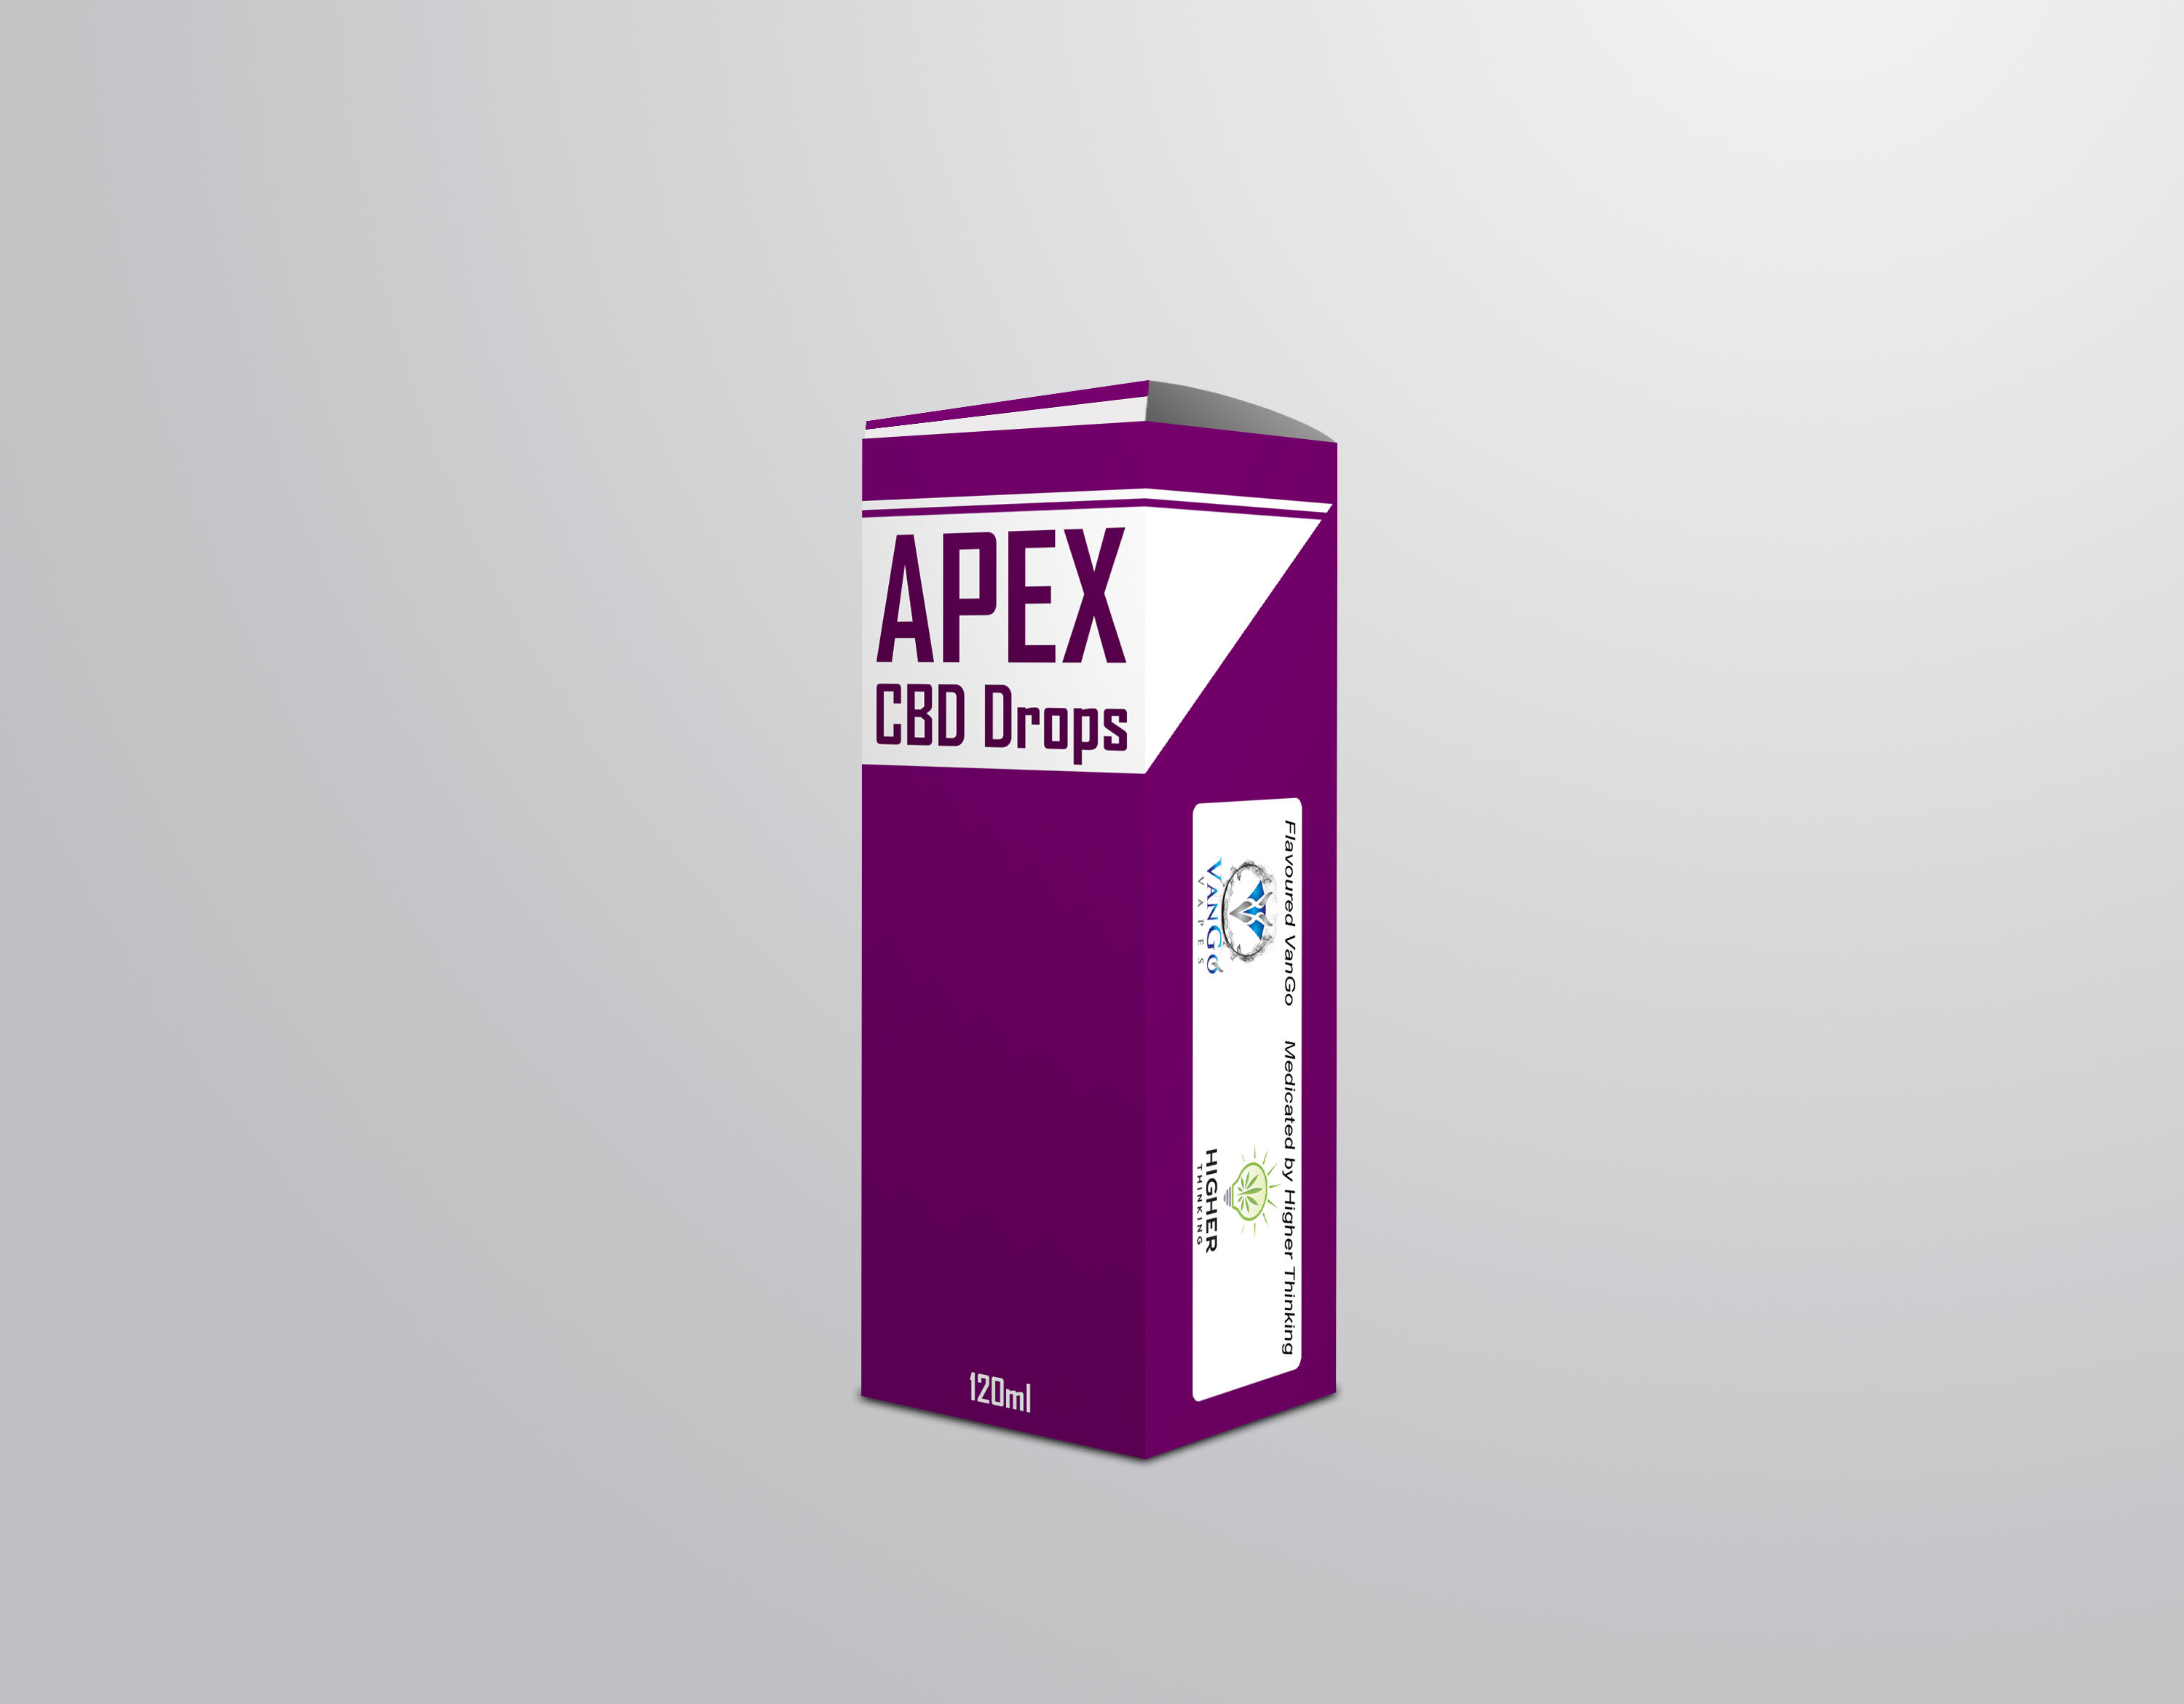 Packaging Design by chAnDOS - Entry No. 2 in the Packaging Design Contest Packaging Design for Apex CBD Drops!.